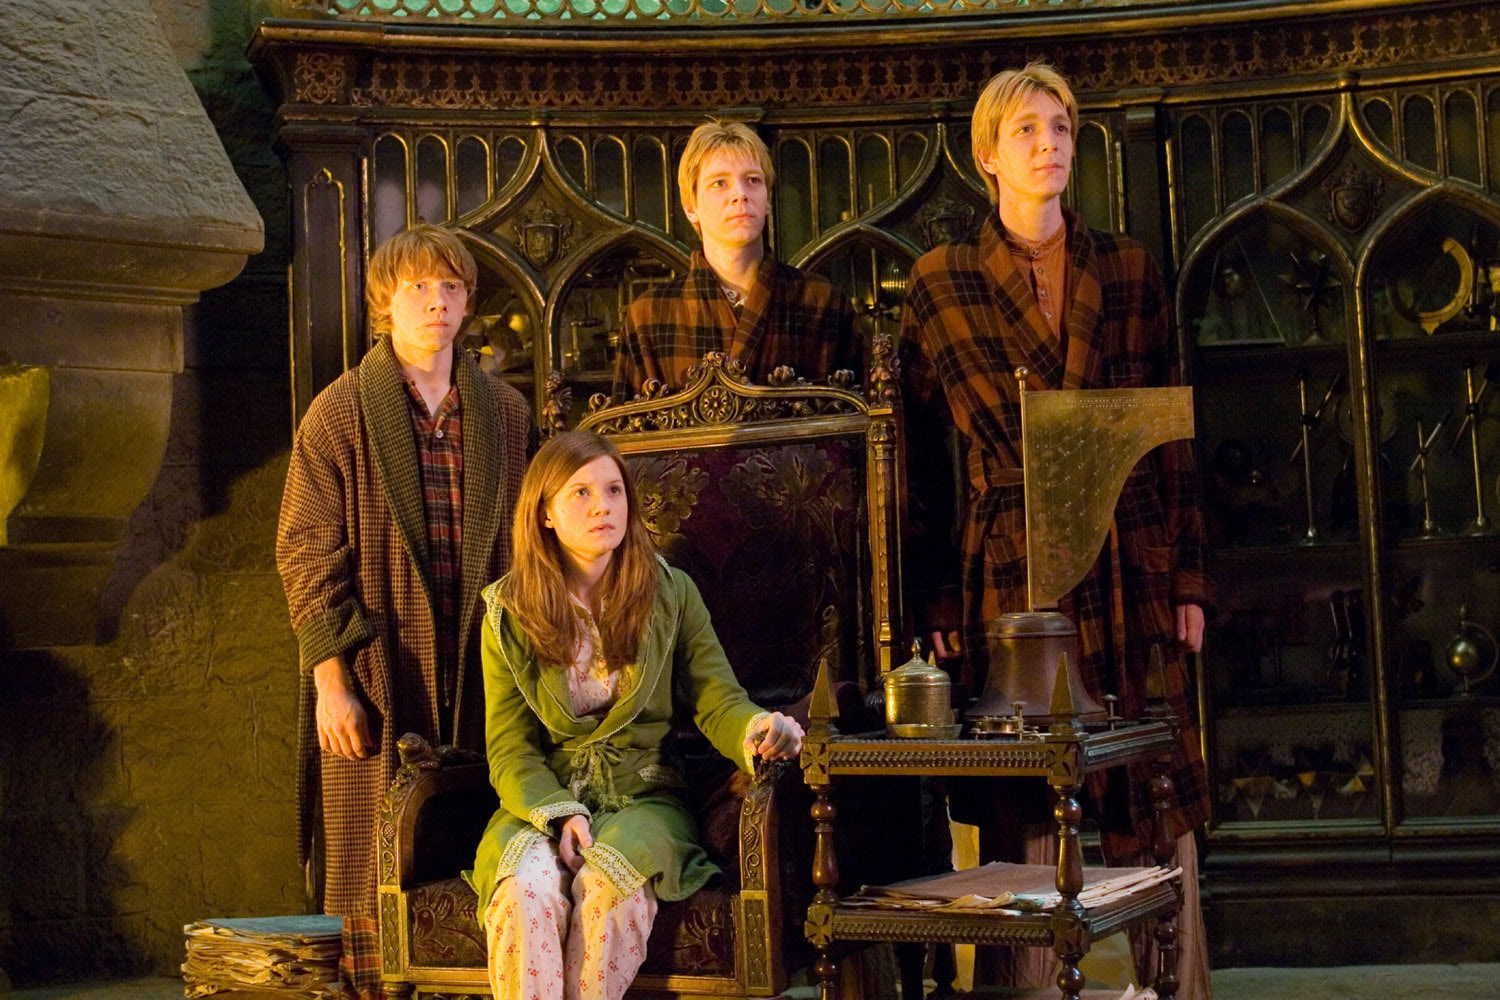 The Weasley family in Dumbledore's office